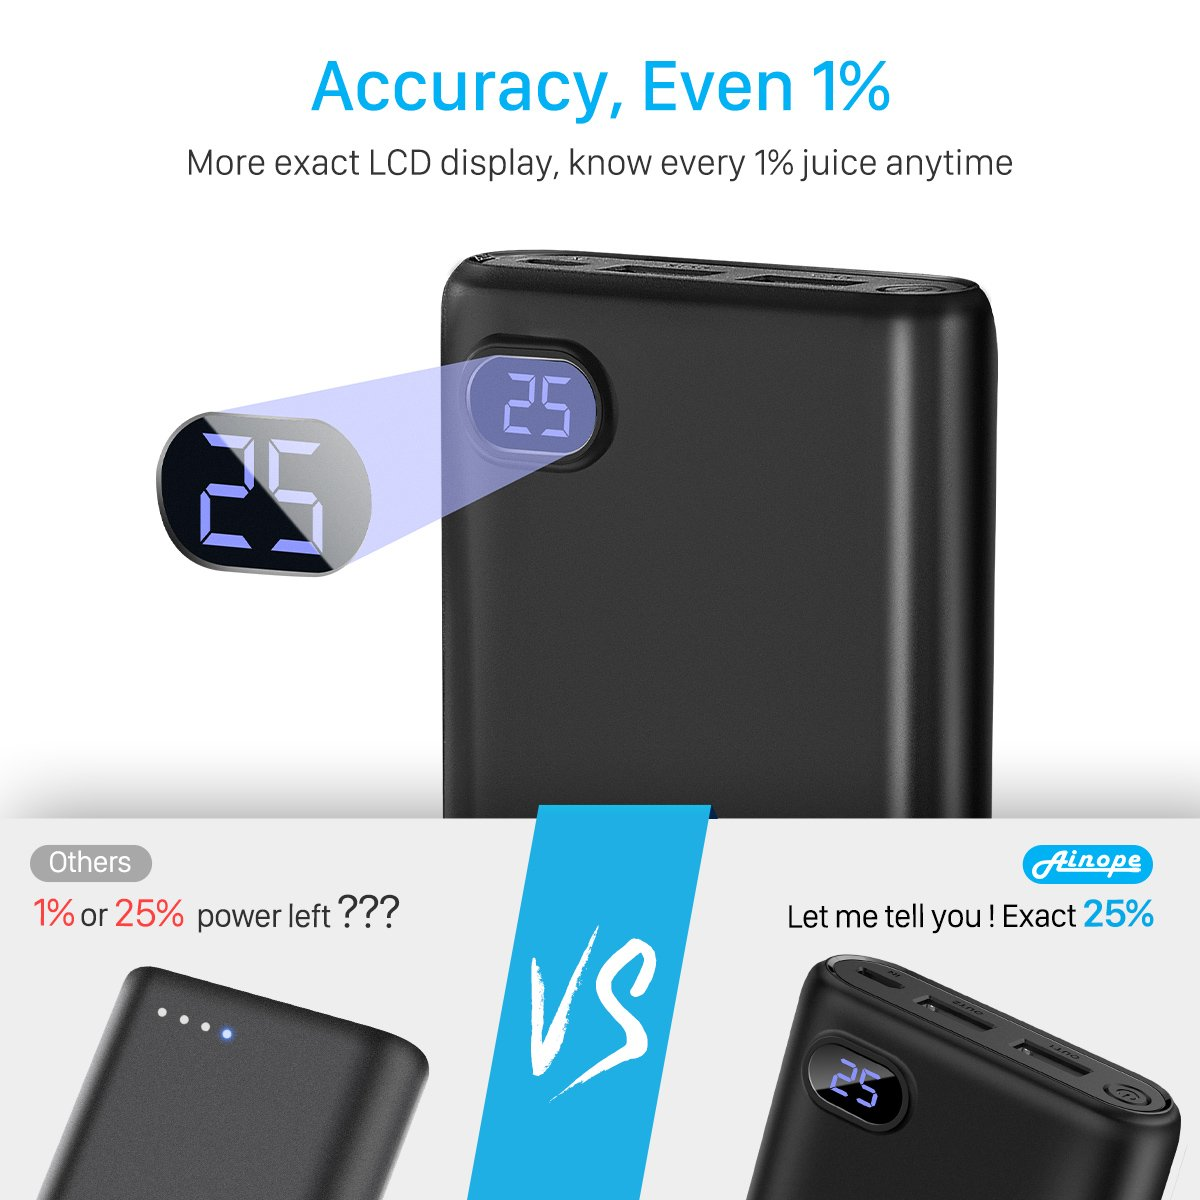 10000mAh Portable Charger,(Smallest) (LCD Display) (Powerful) Ainope External Battery Pack/Battery Charger/Phone Backup Power Bank with Dual USB Output(3.1A),Perfect Carry for Travel-Black by Ainope (Image #5)